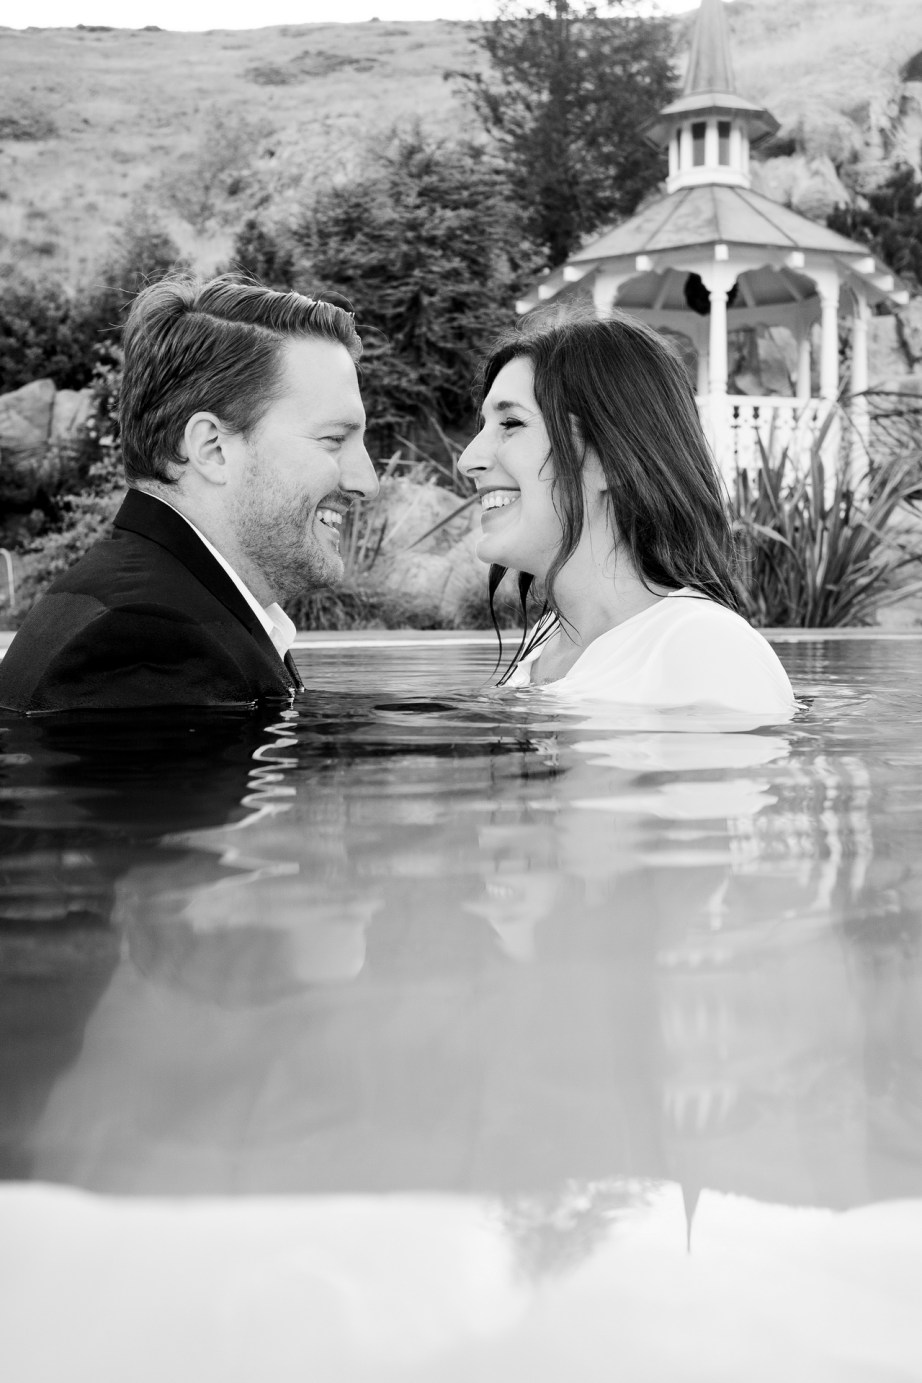 madonna_inn_engagement_photos_Nicole_caldwell_photo_36